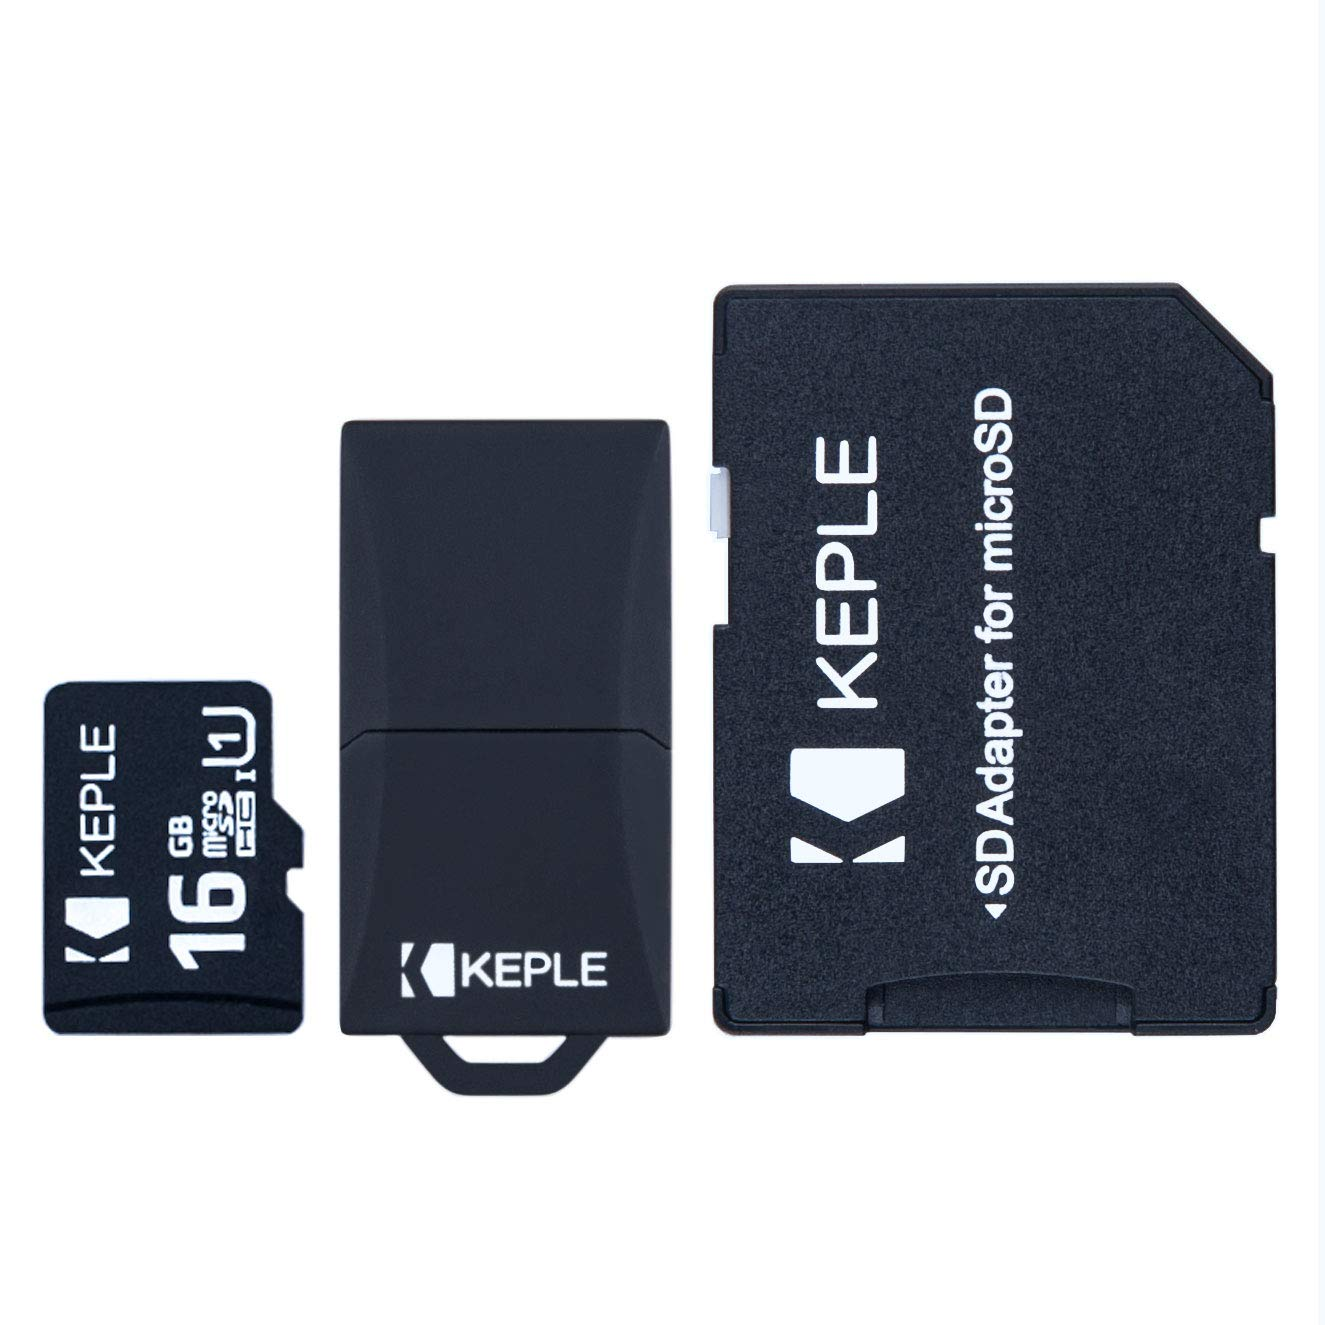 TALLA 16GB. Tarjeta de Memoria Micro SD da 16GB | MicroSD Class 10 Compatible con Akaso Models: Brave 5 4K / Brave 4 4K / V50 Pro / V50 Native / EK7000 Plus / EK7000 / EK5000 Sports Action Camcorder 16 GB